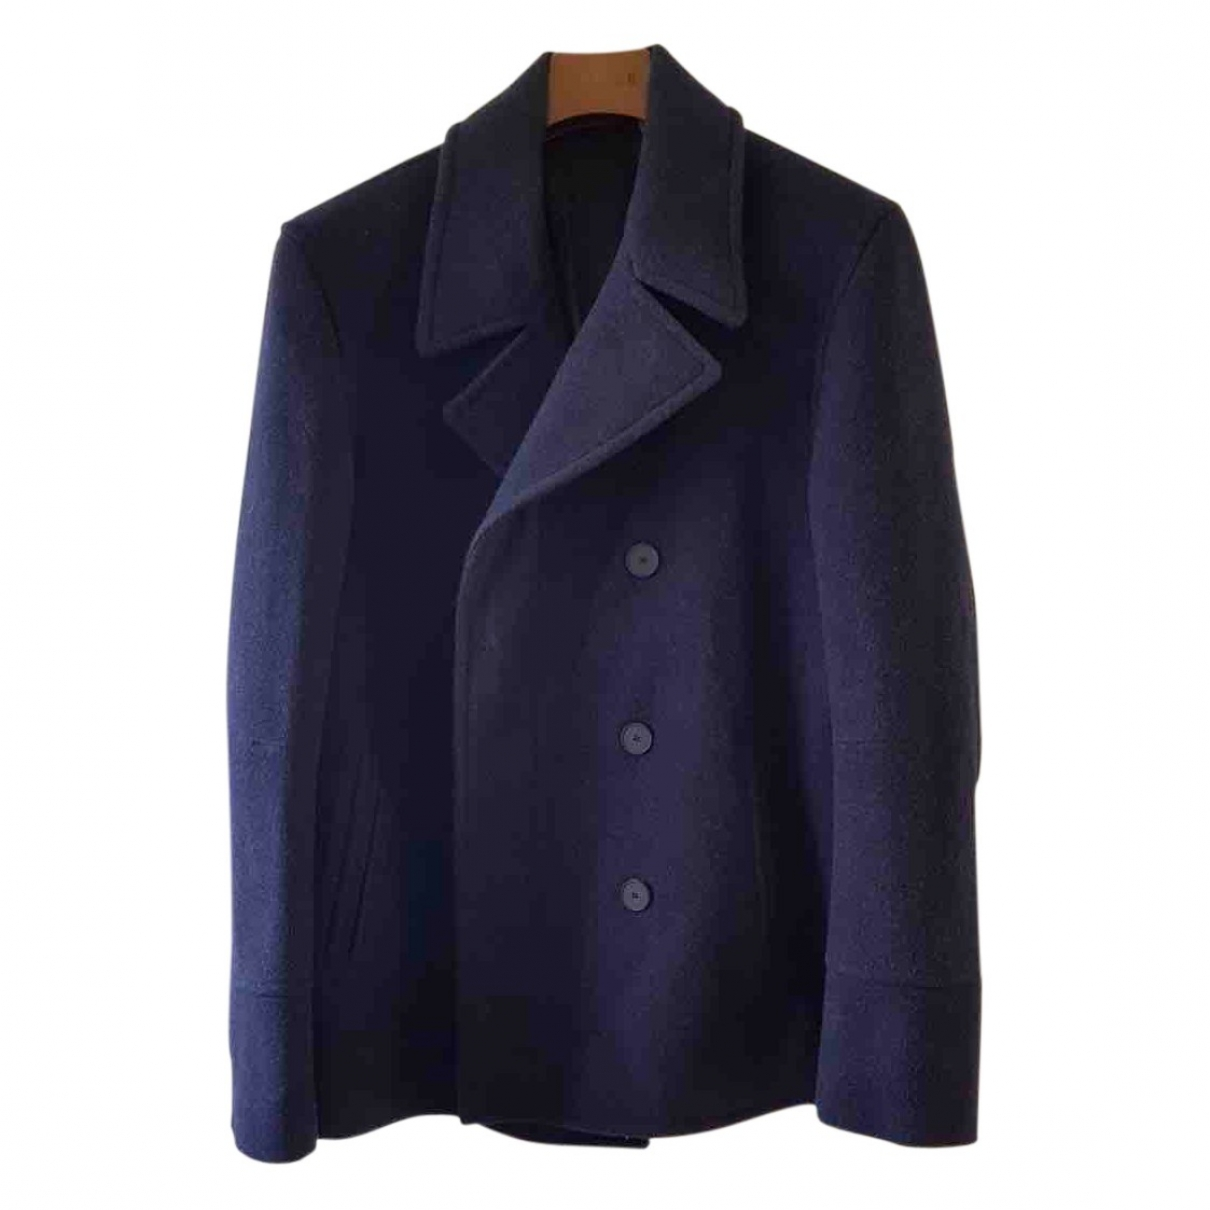 Nicole Farhi \N Navy Wool coat  for Men M International